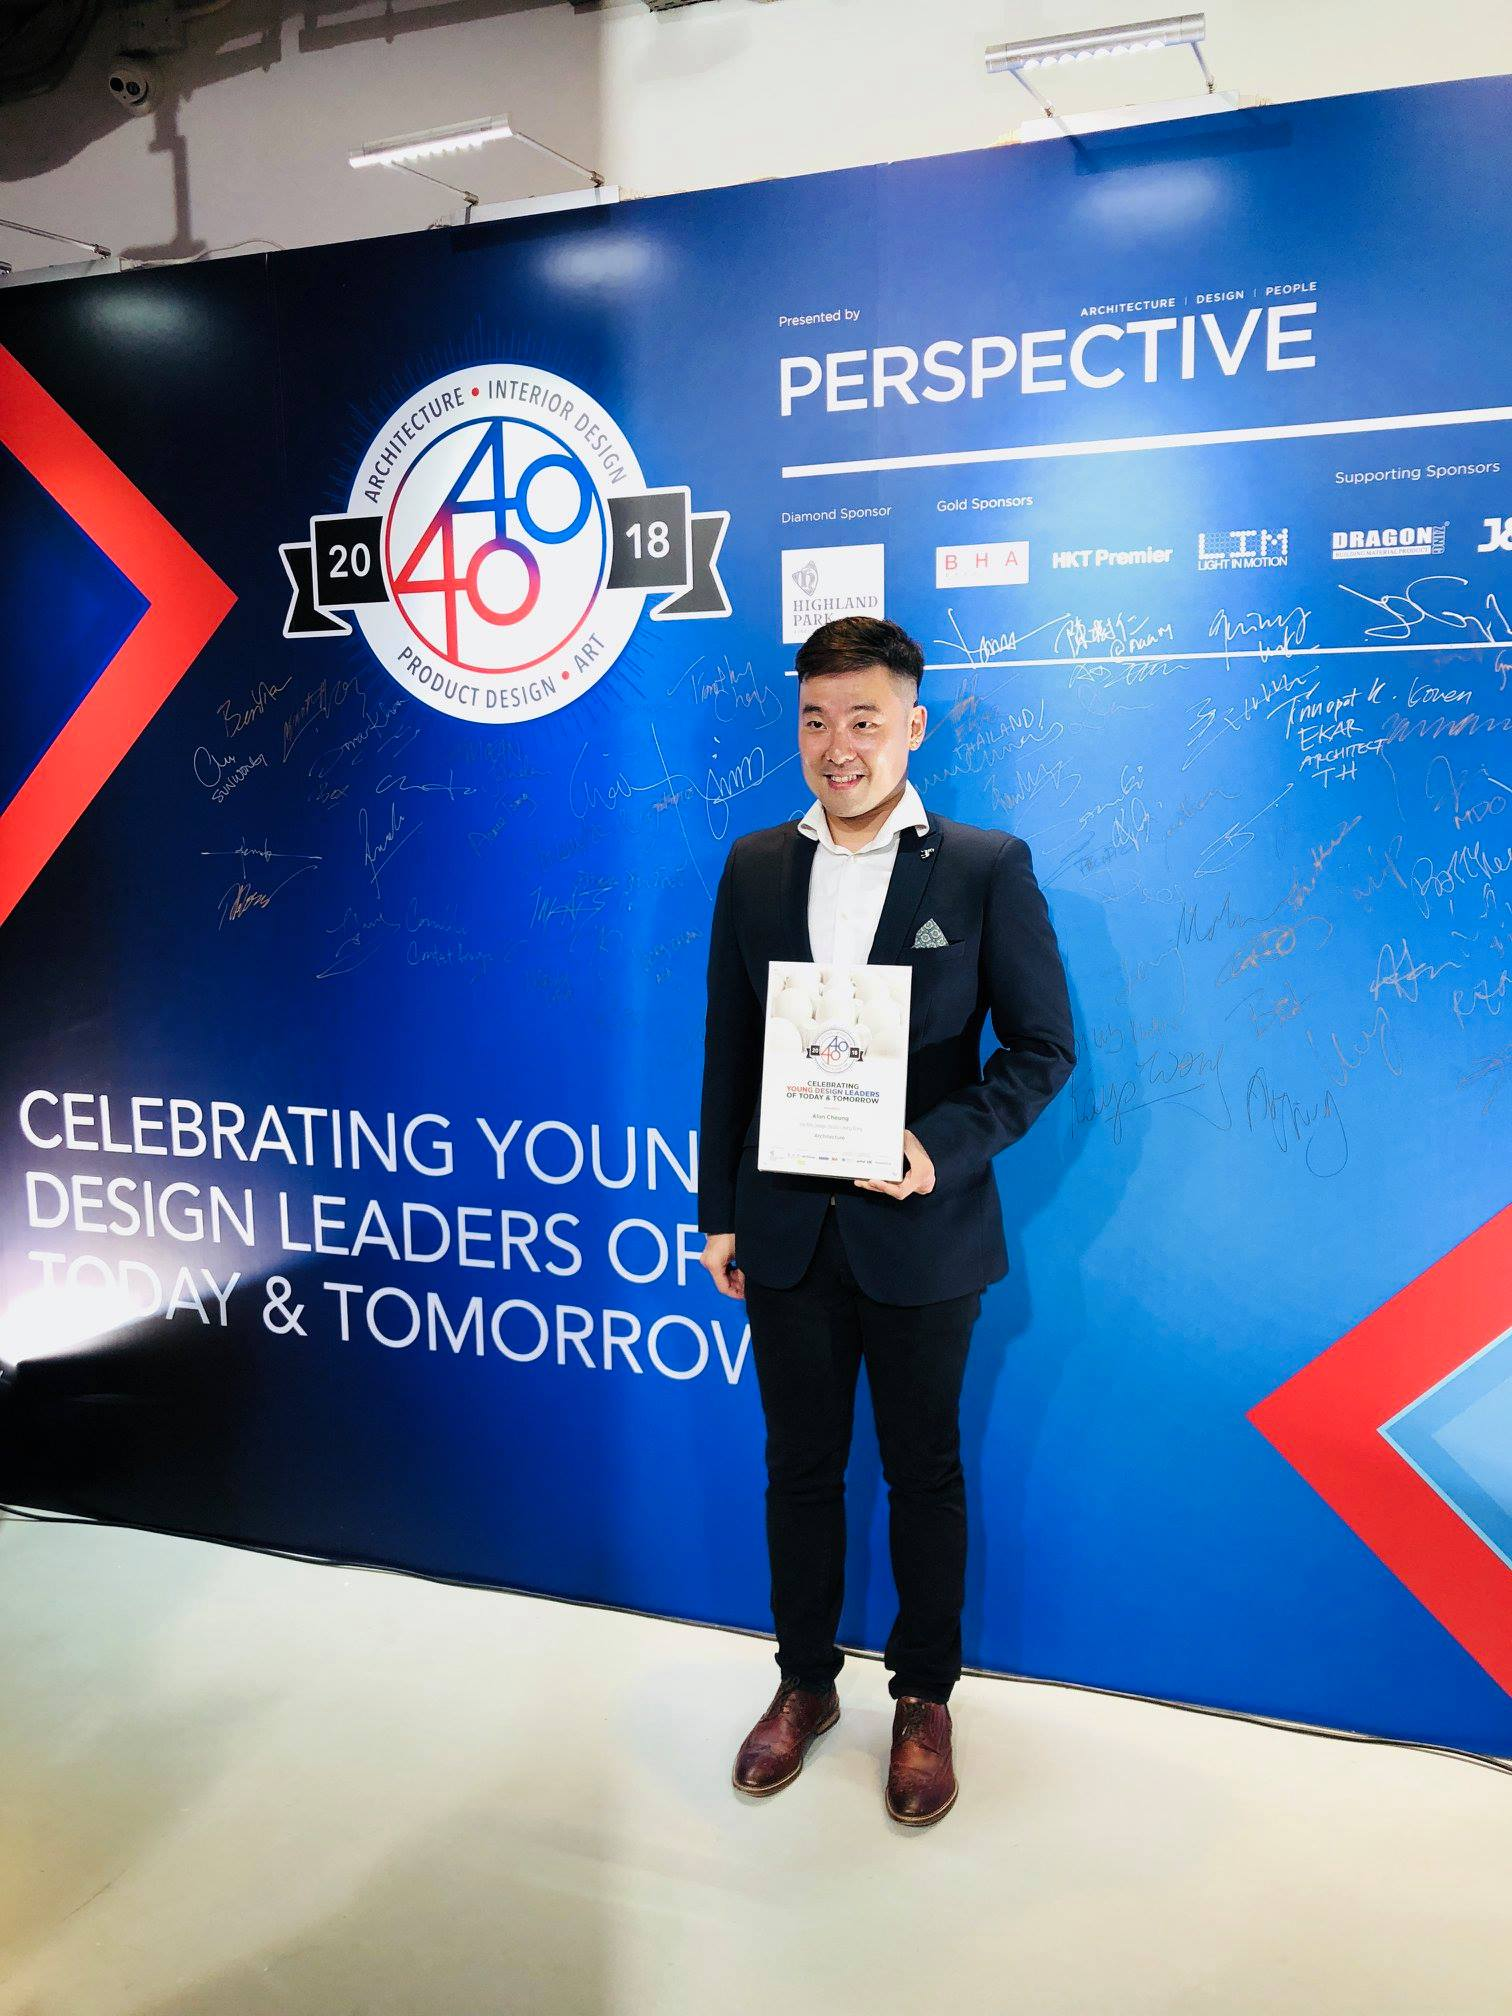 Our latest 40 under 40 awardee